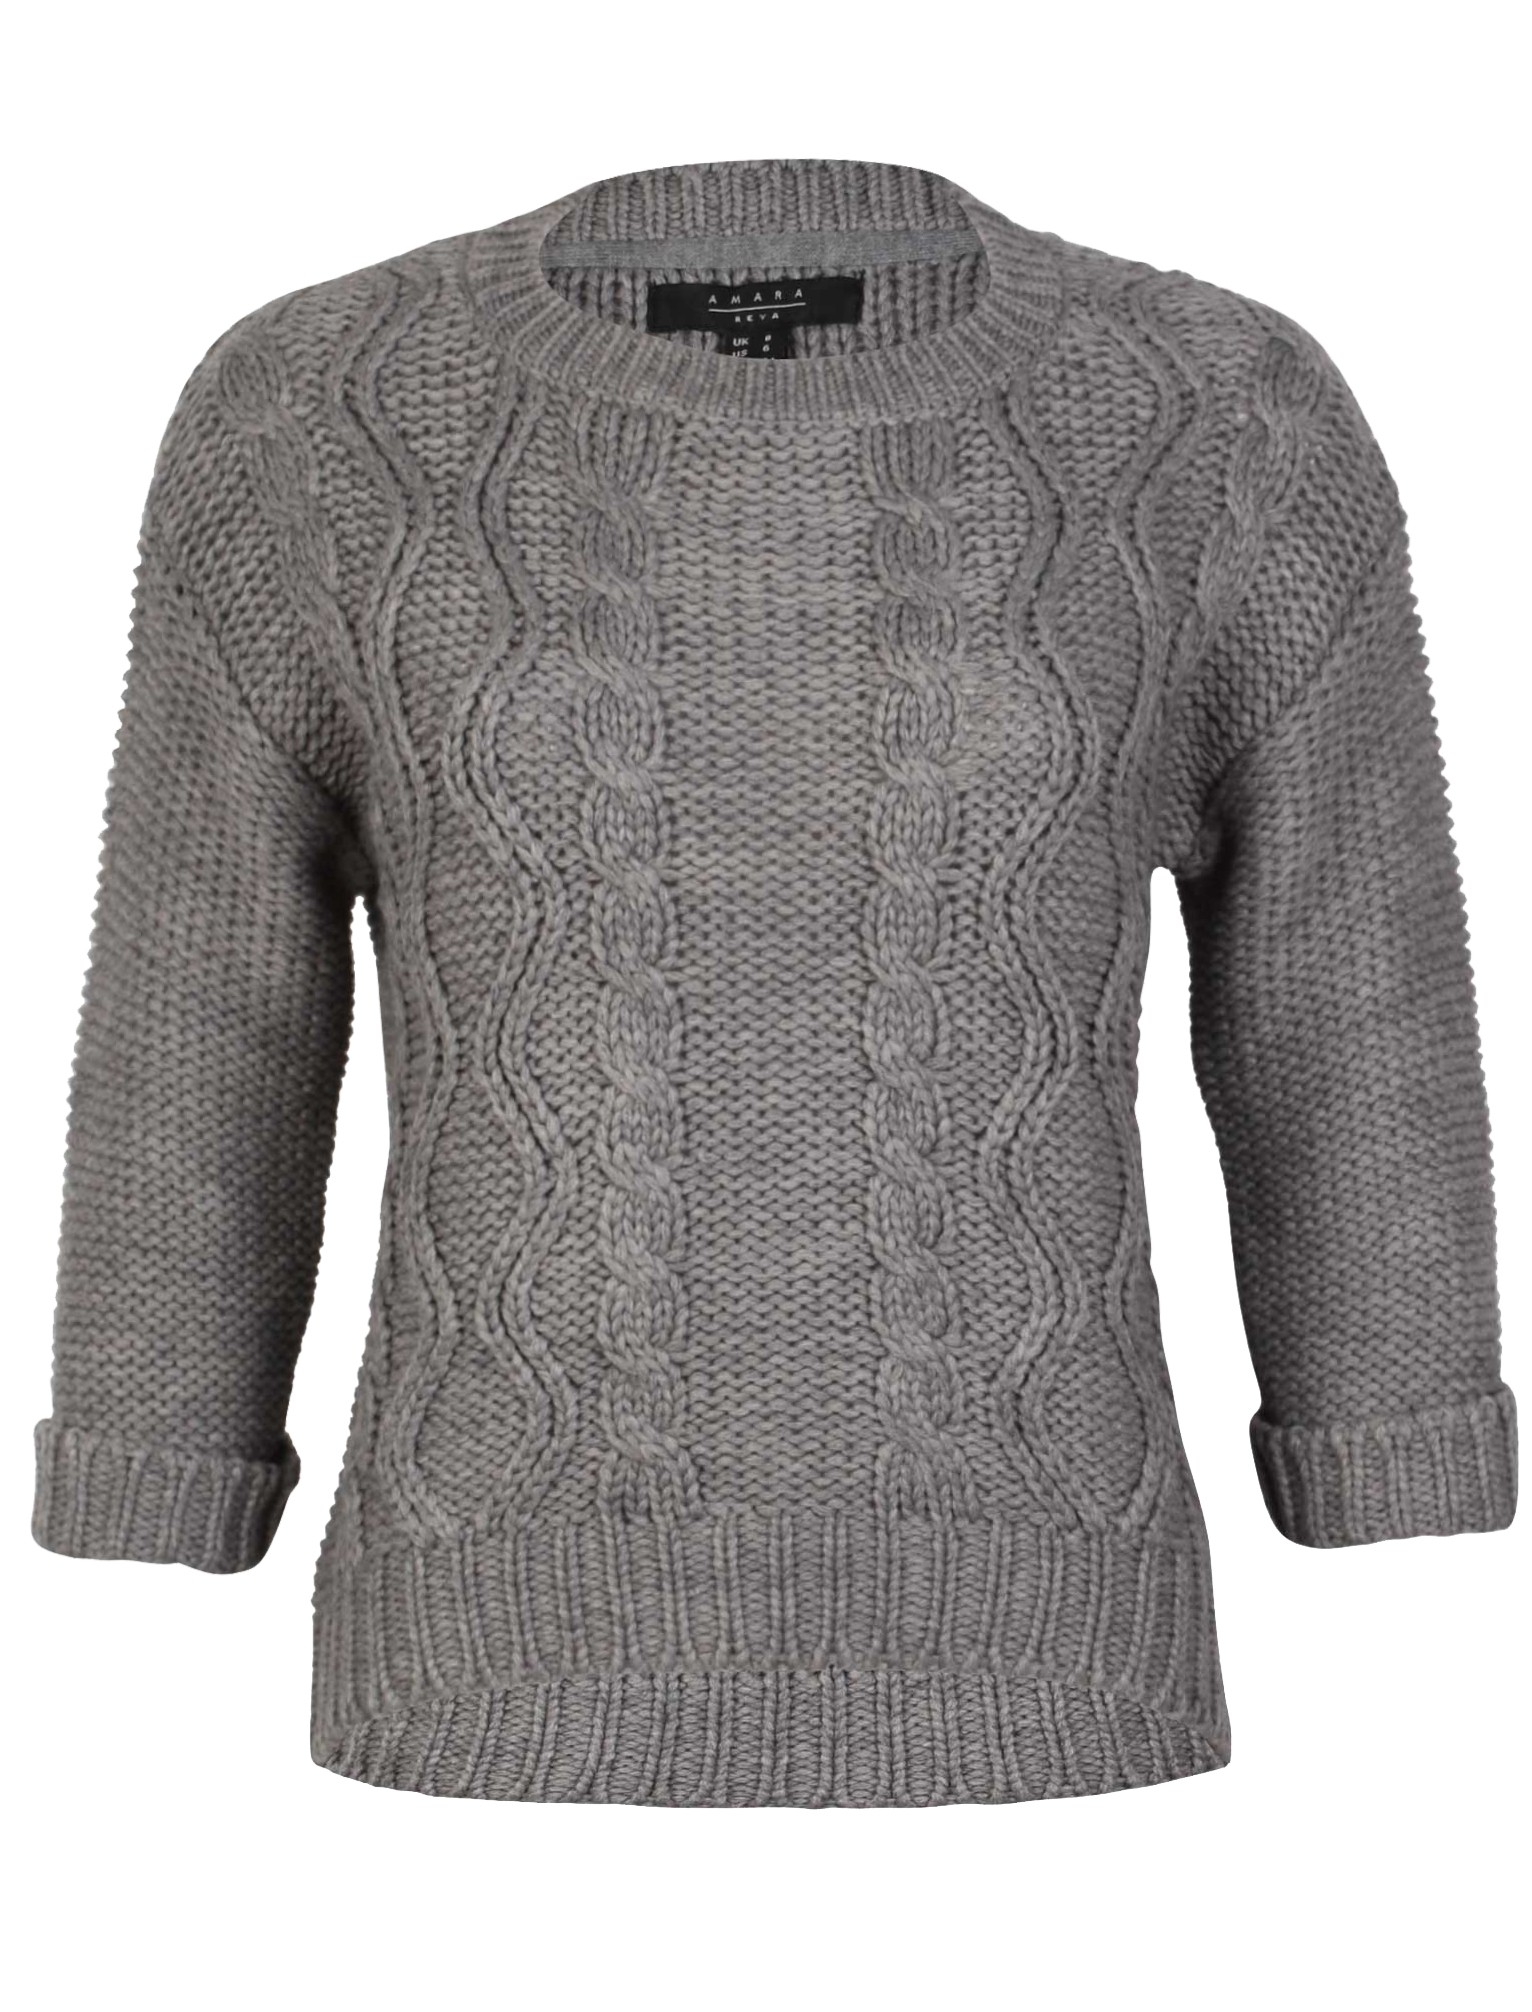 amara reya buttercup cable knit jumper chmyhmf